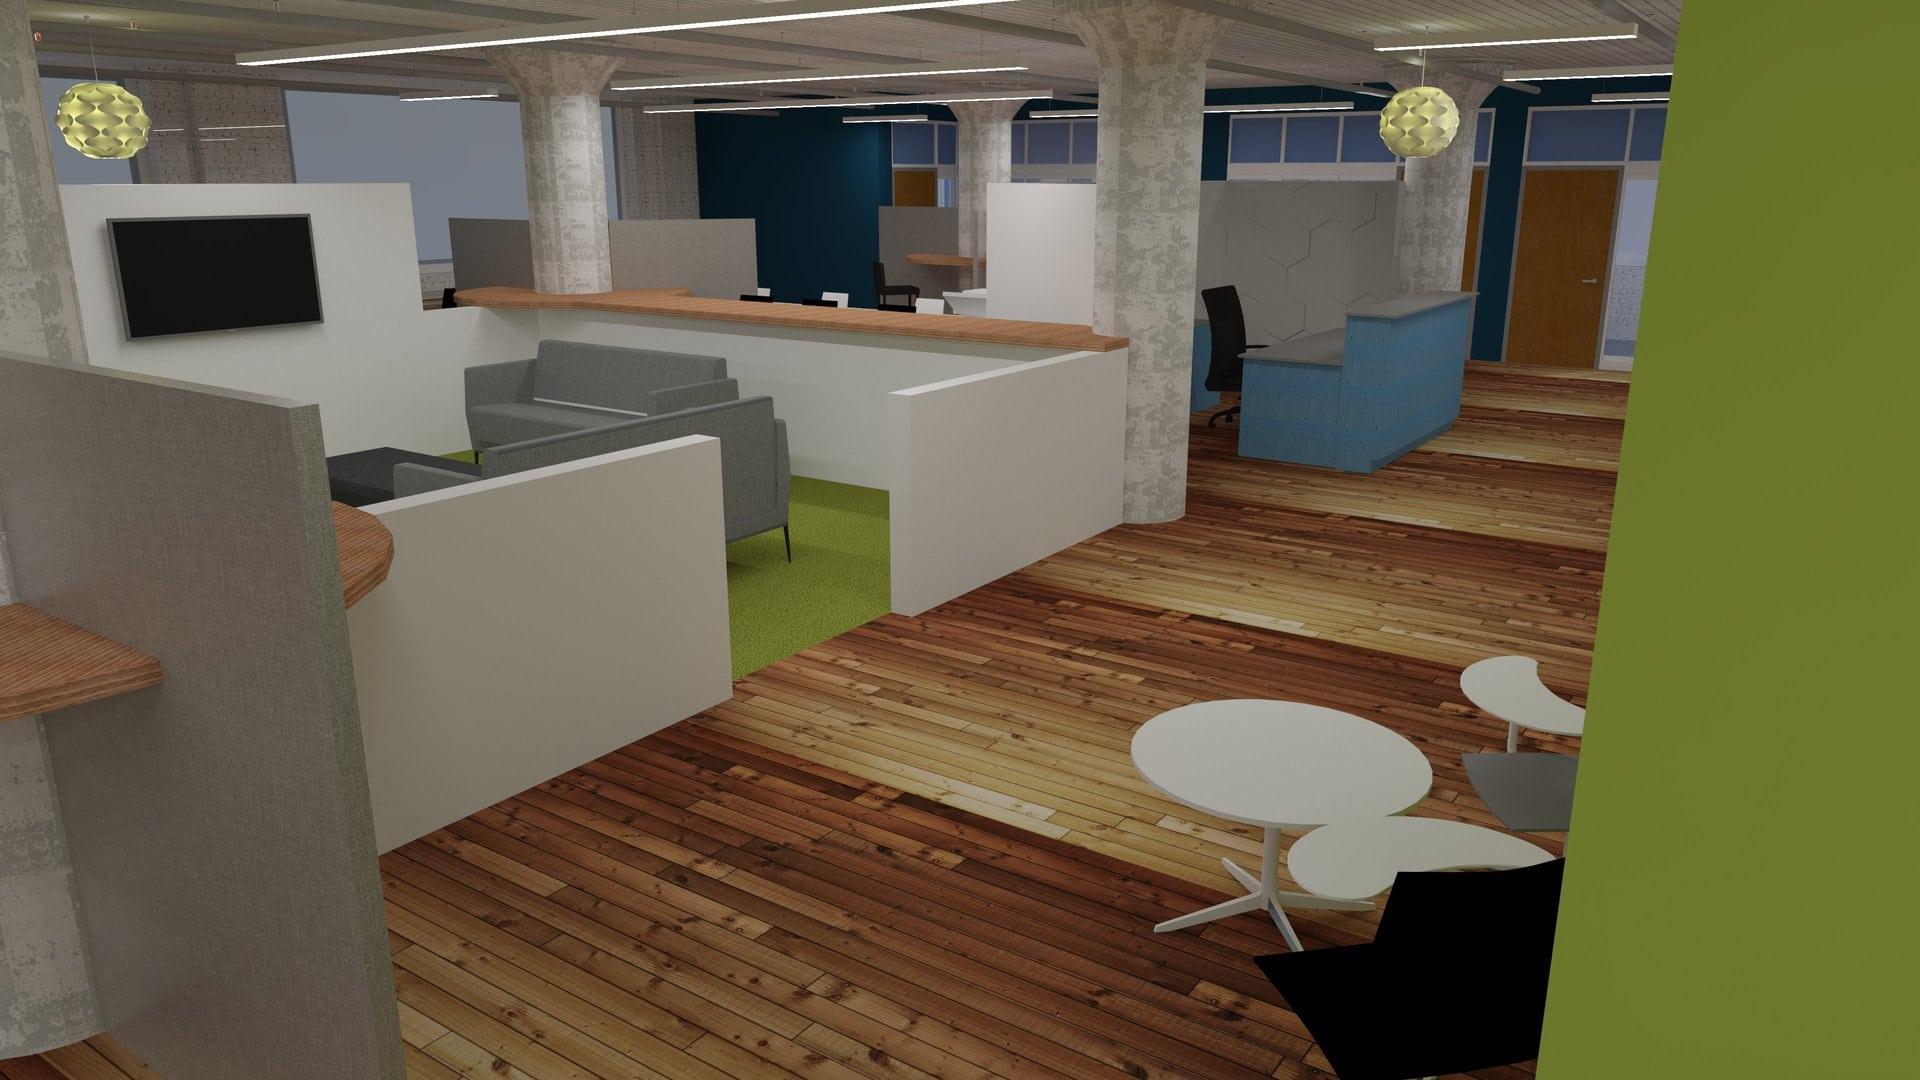 Design concept of coworking space